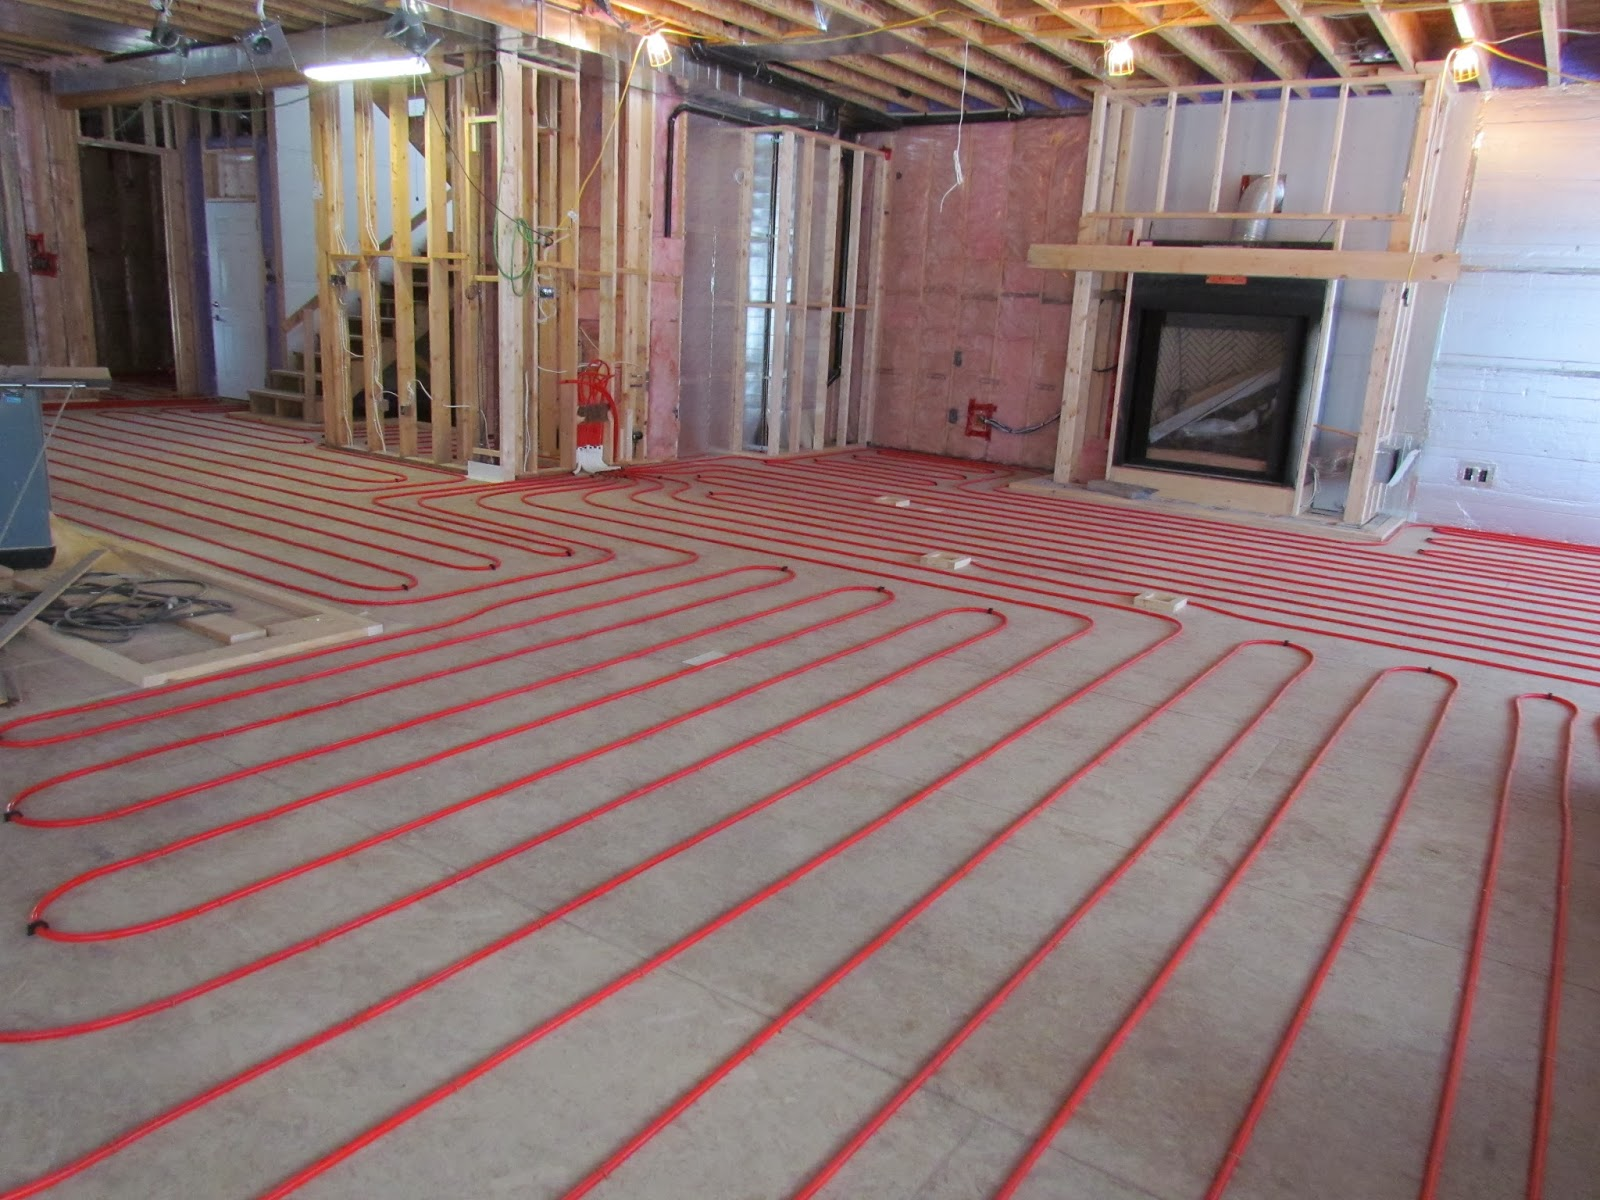 Radiant Ceiling Heat Wiring Diagrams For Dummies Electric Wire Diagram Ask Rob In Floor Heating The Basement Old Residential